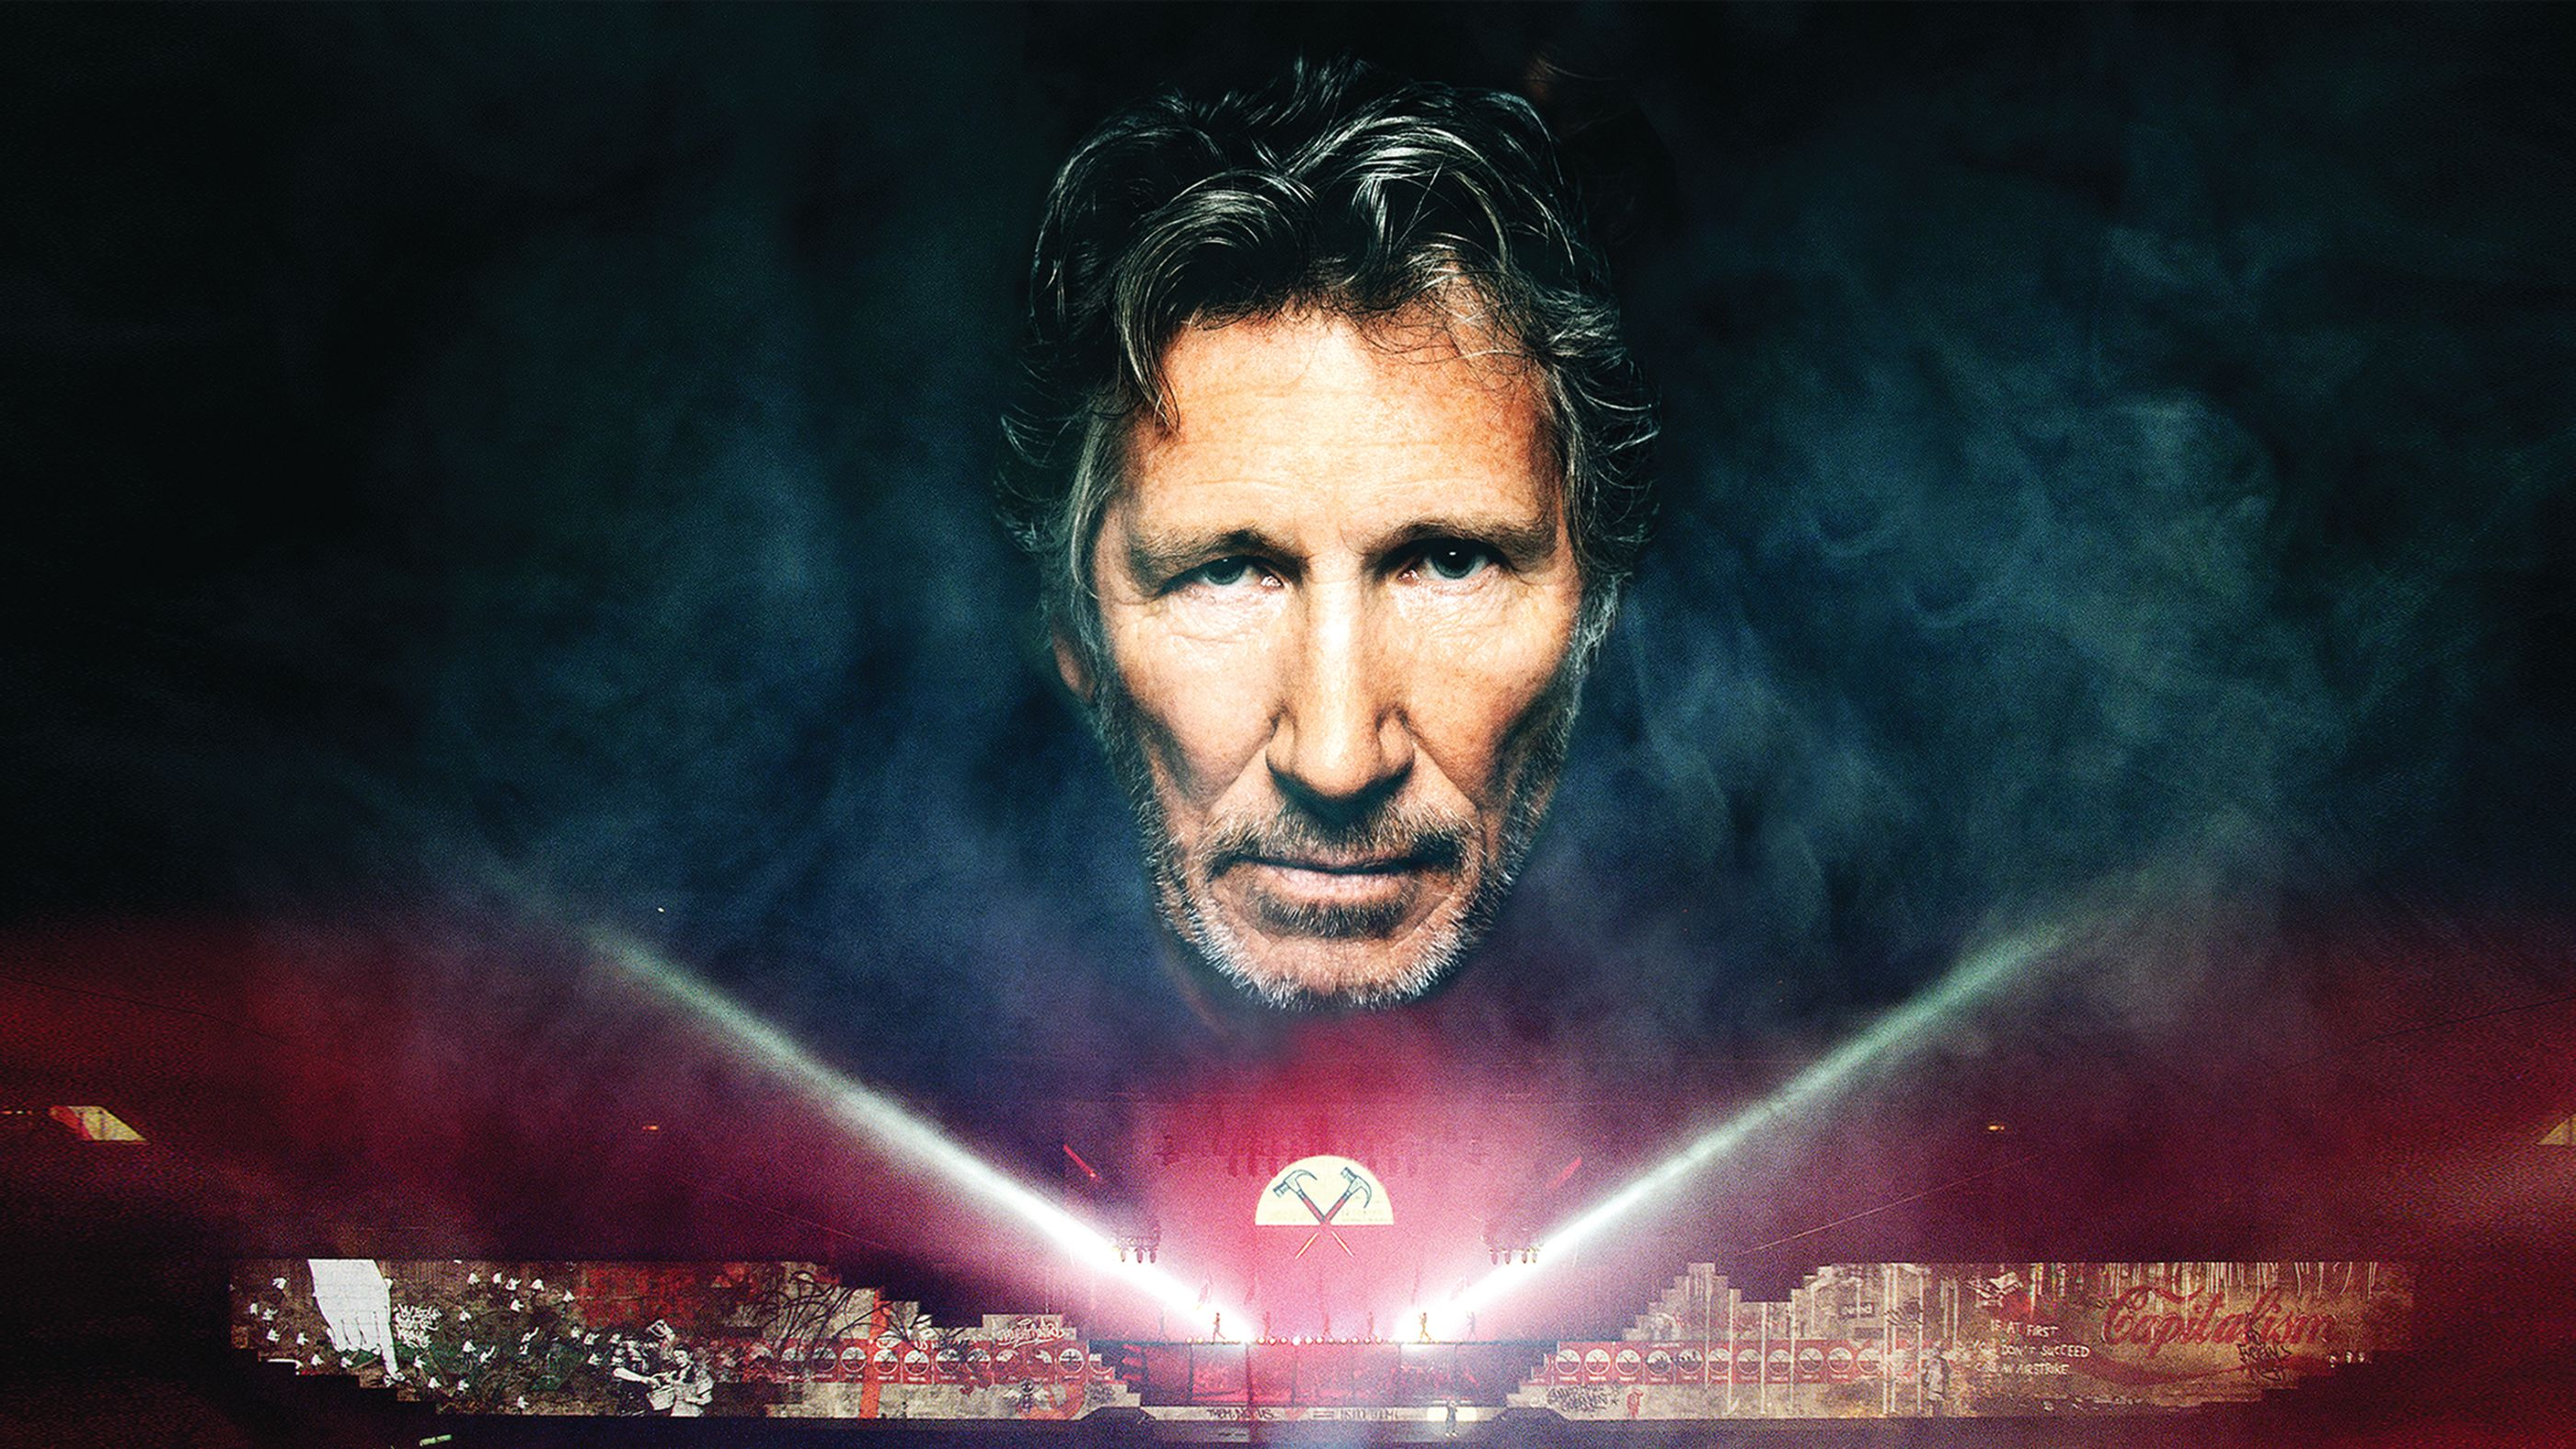 Roger Waters The Wall 2014 Concert Film